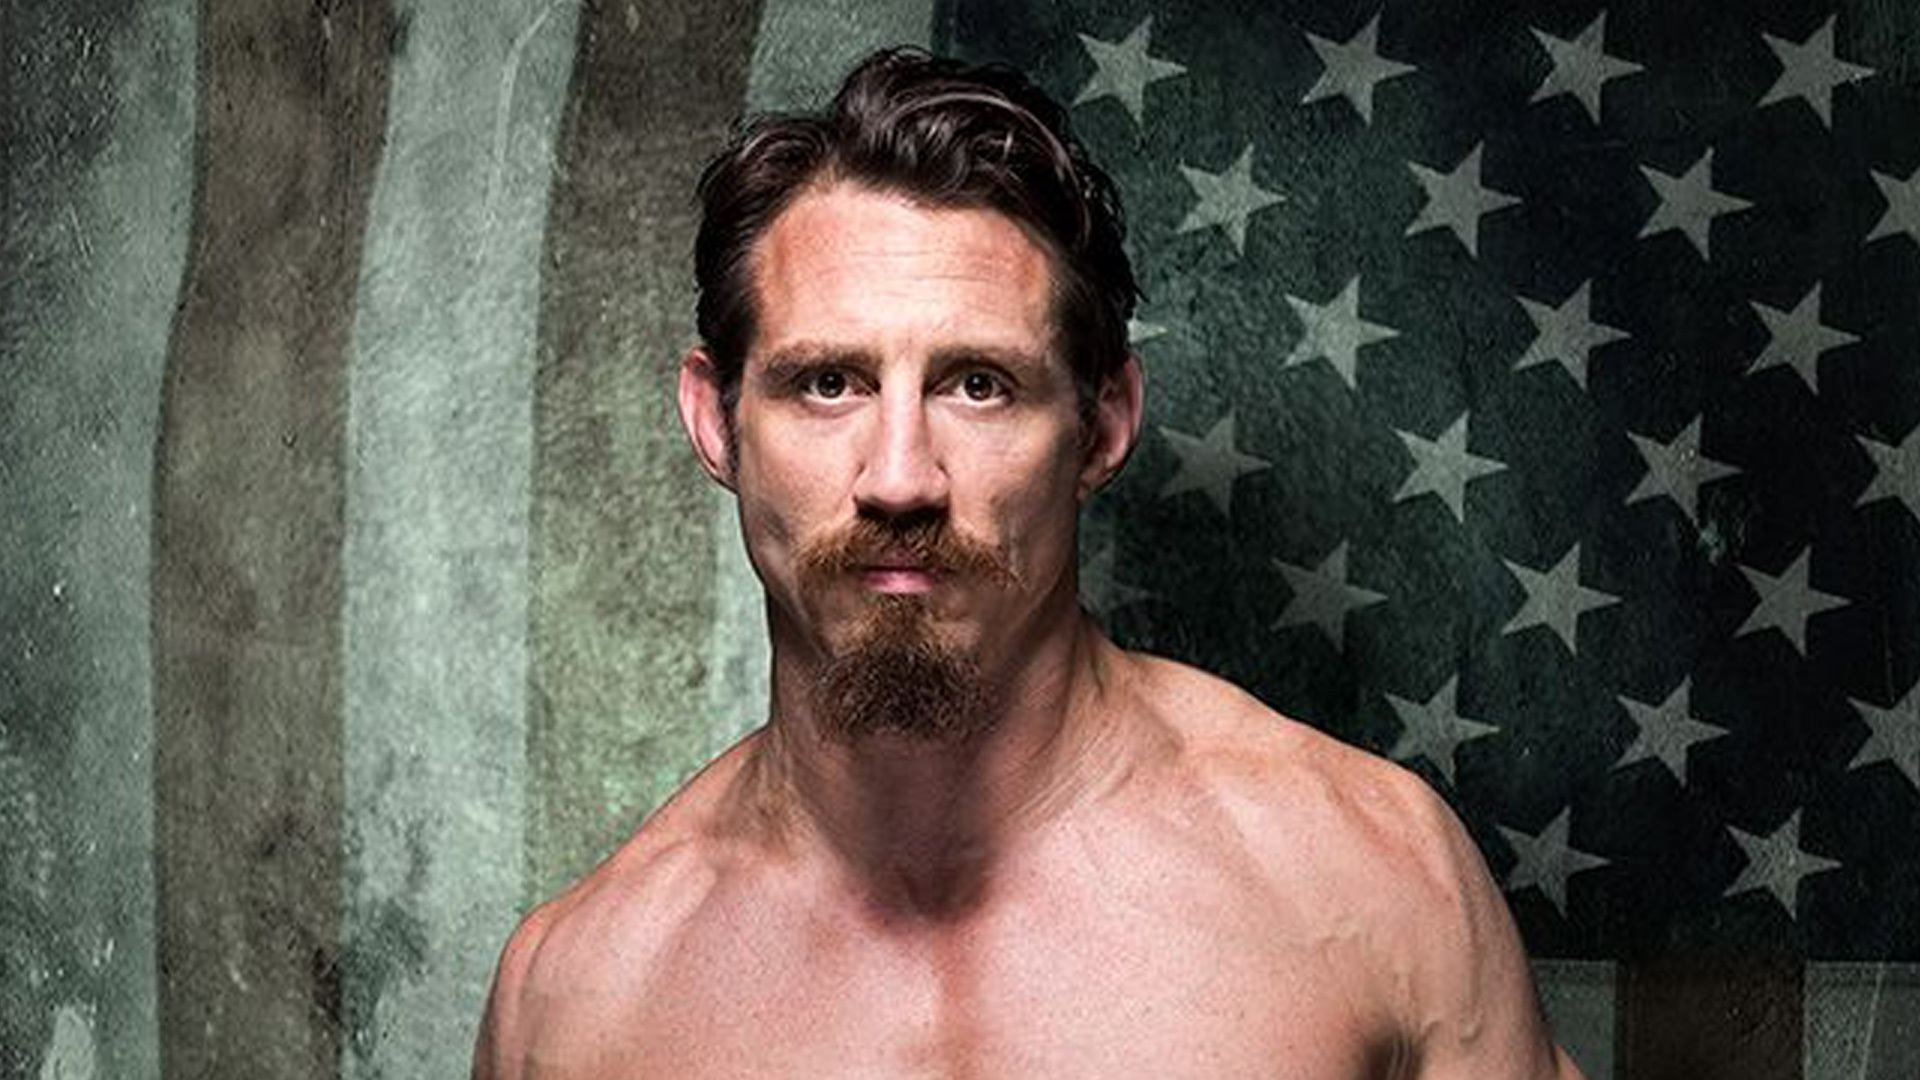 Tim Kennedy - Hard To Kill: How To Fight For Freedom & Not Become A Slave To The System